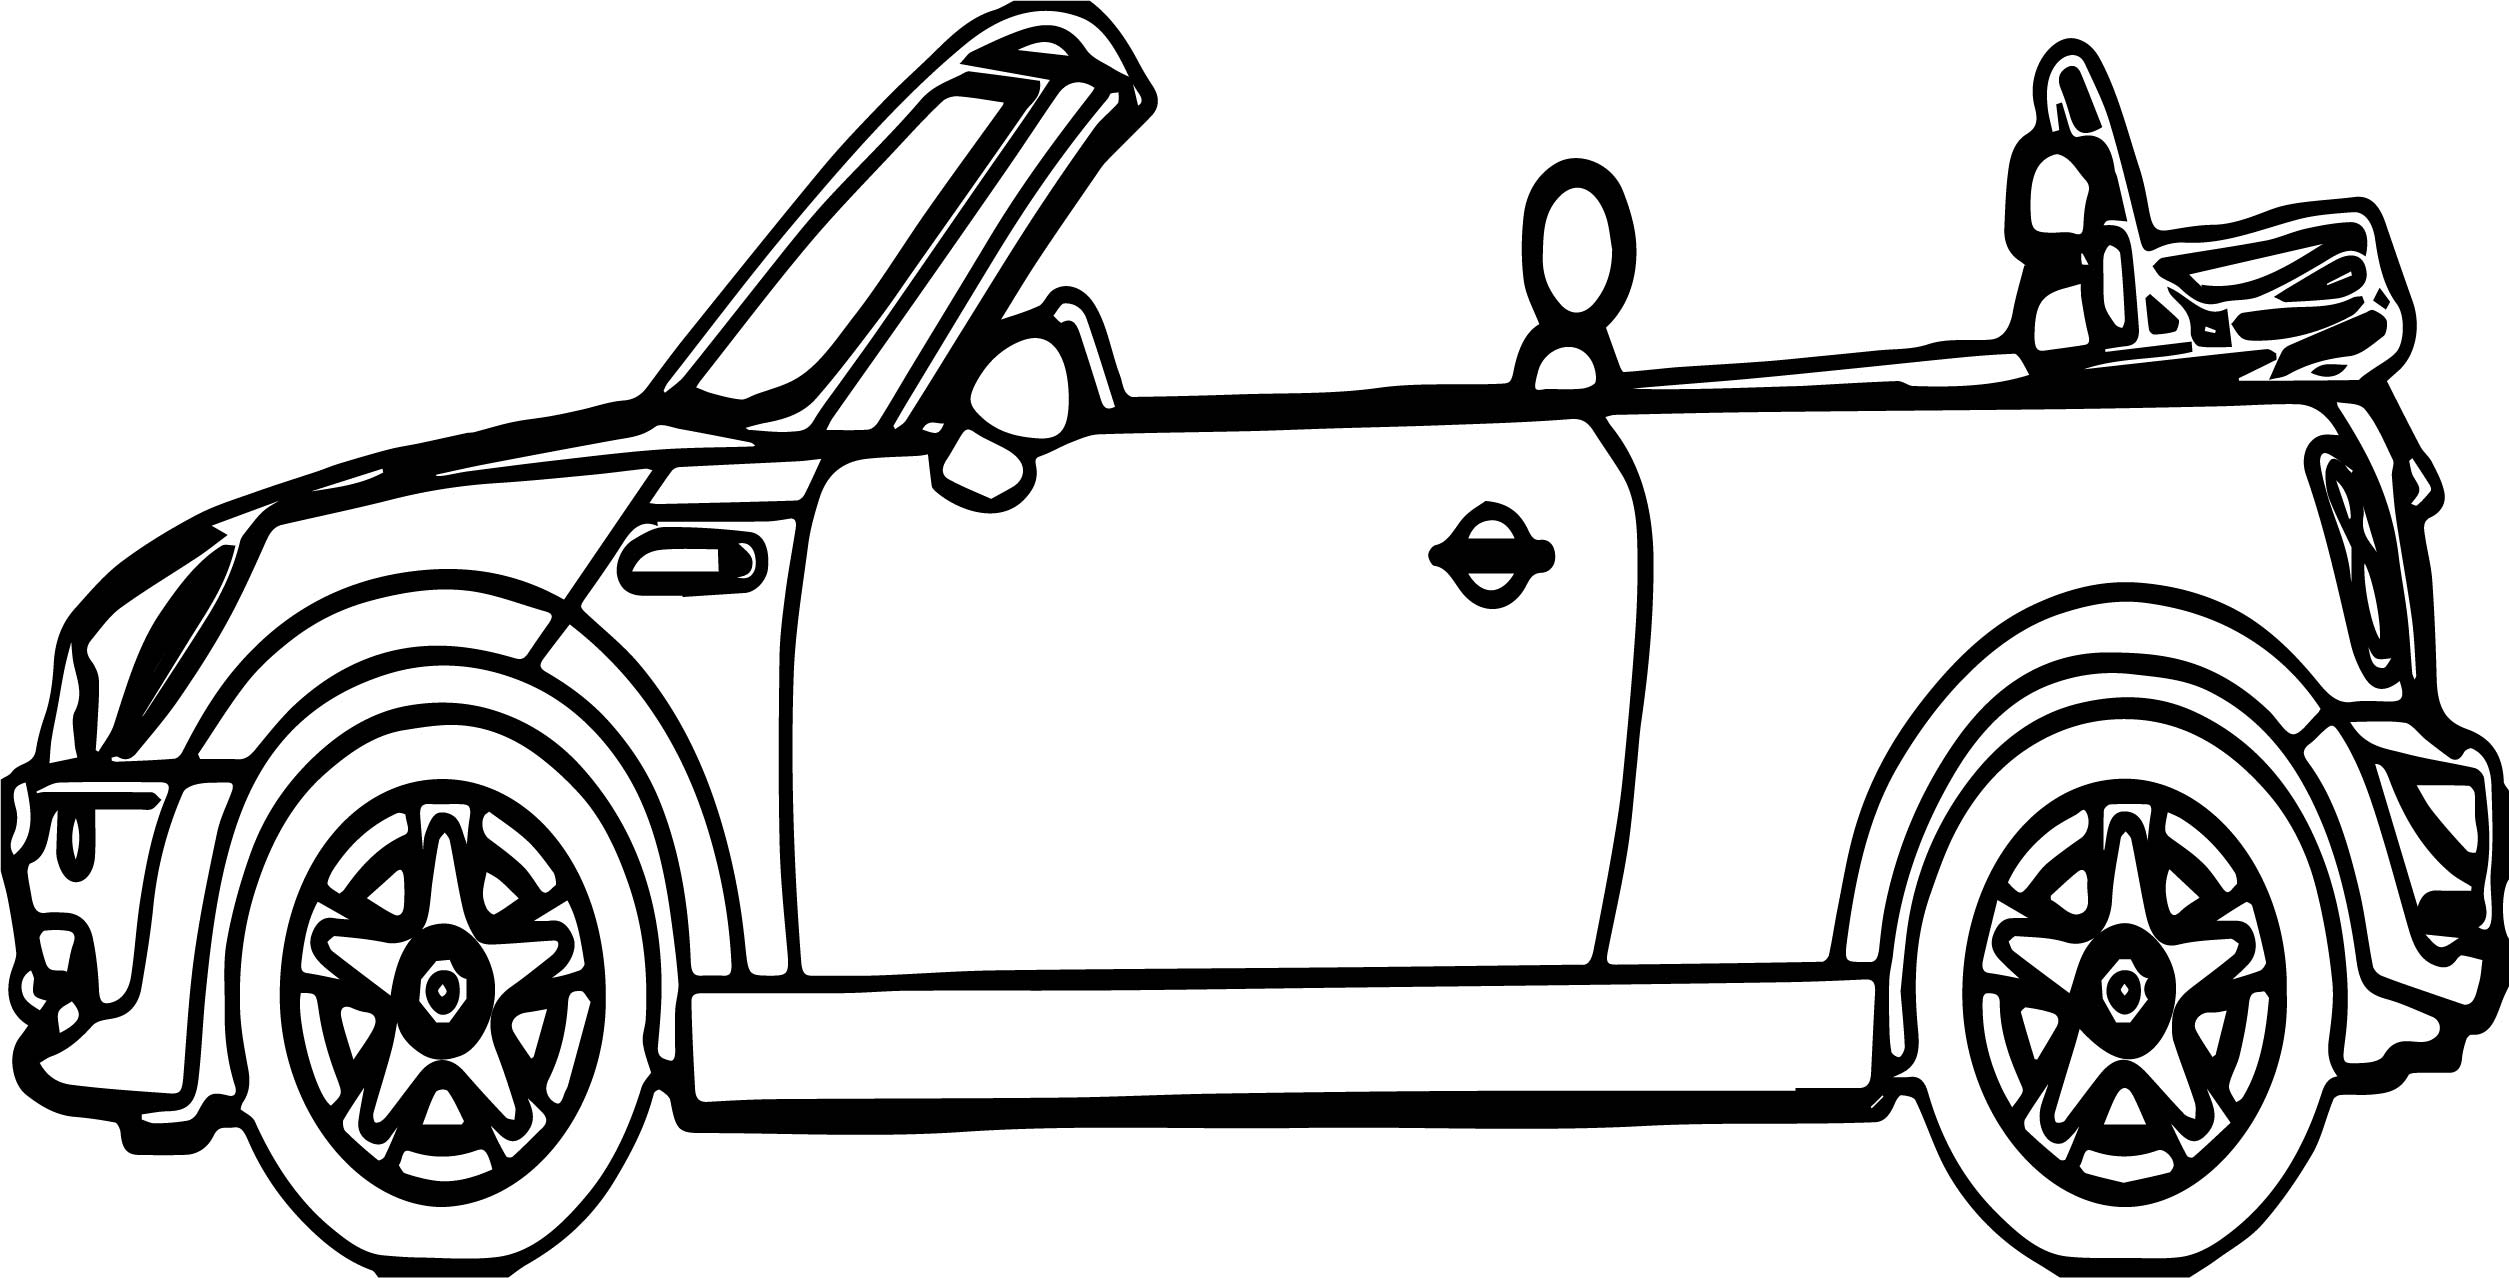 Toy Car Outline Coloring Page